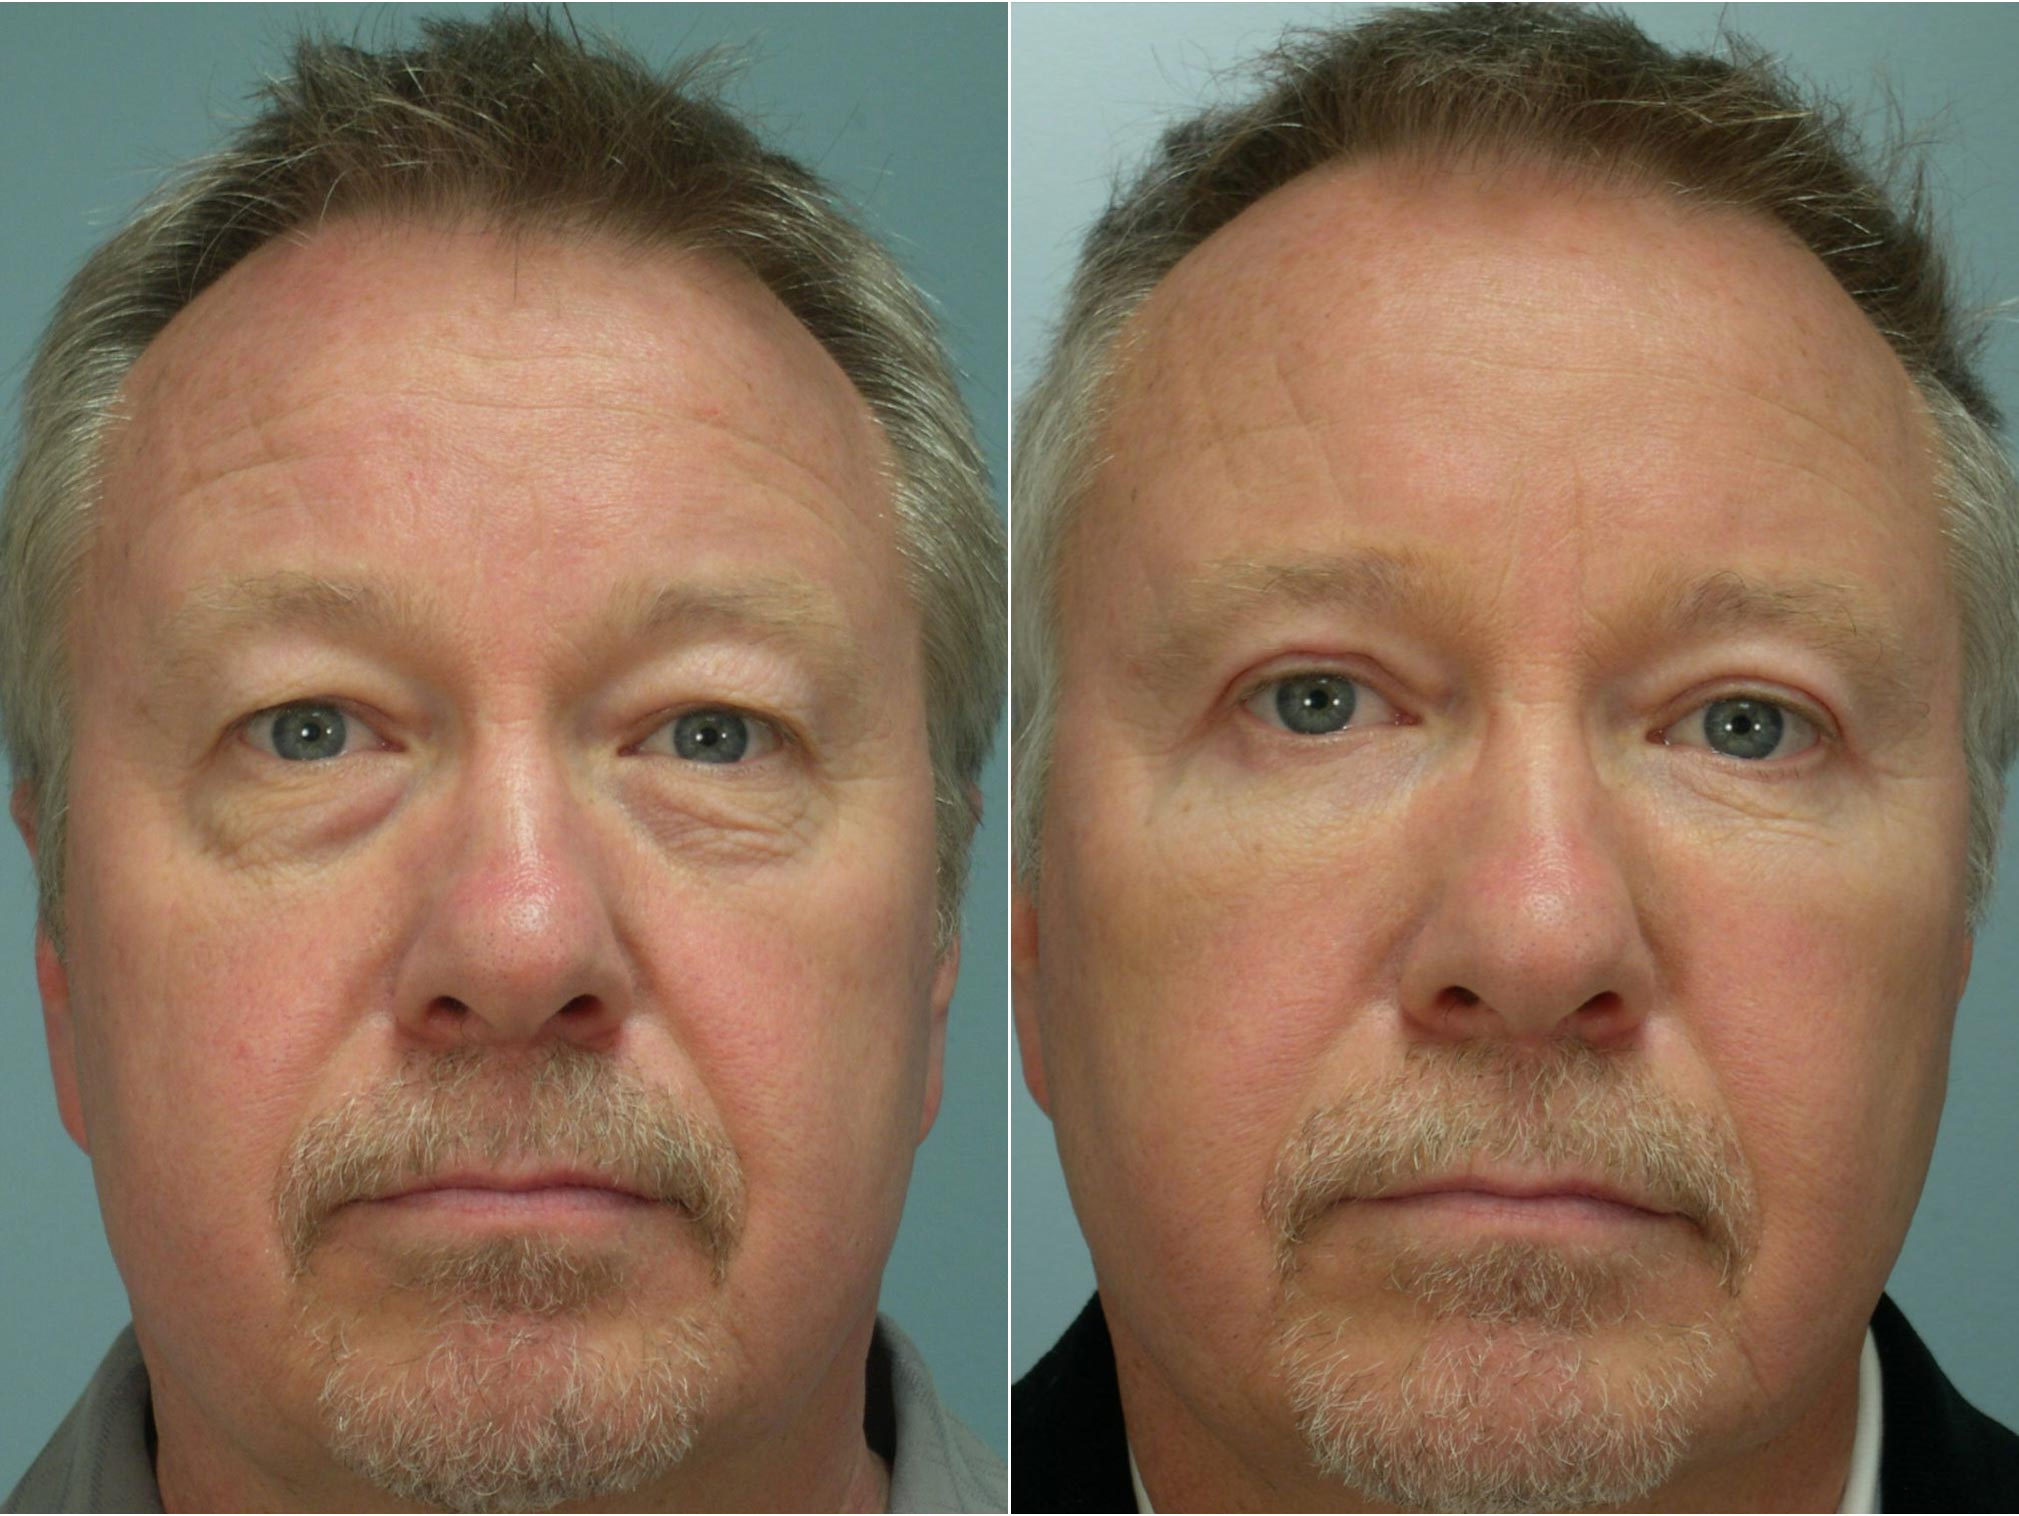 Closeup of a male patient before and after blepharoplasty surgery, resulting in excess skin being removed